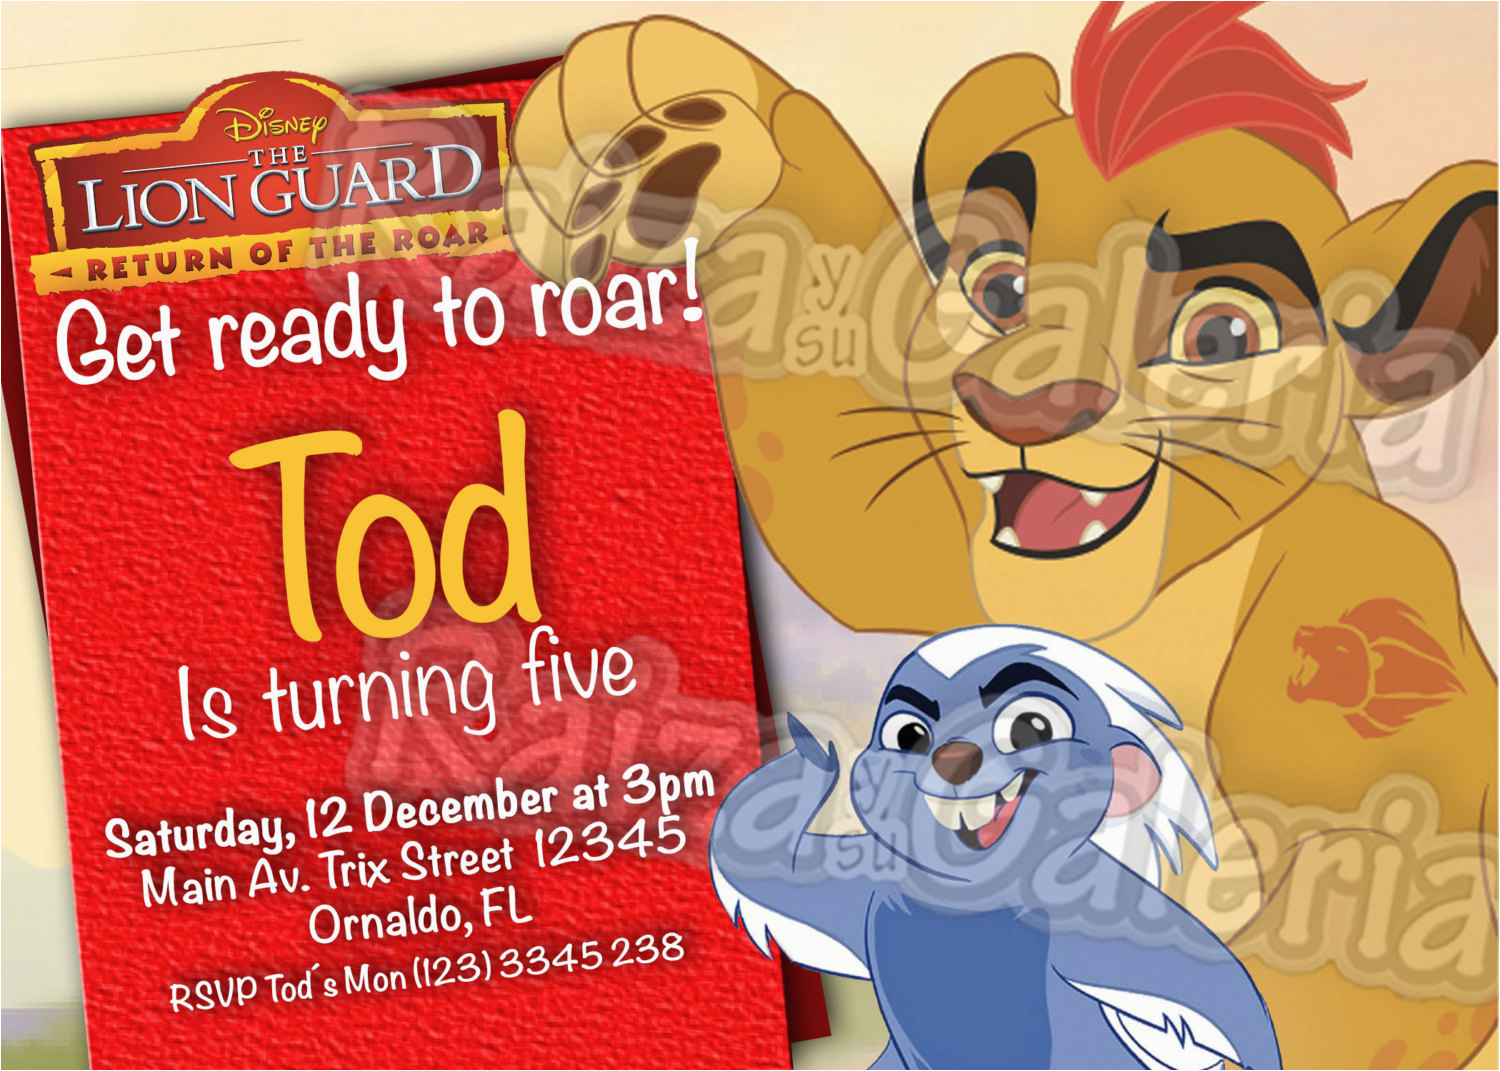 Where To Order Birthday Invitations The Lion Guard Invitation We Deliver Your In